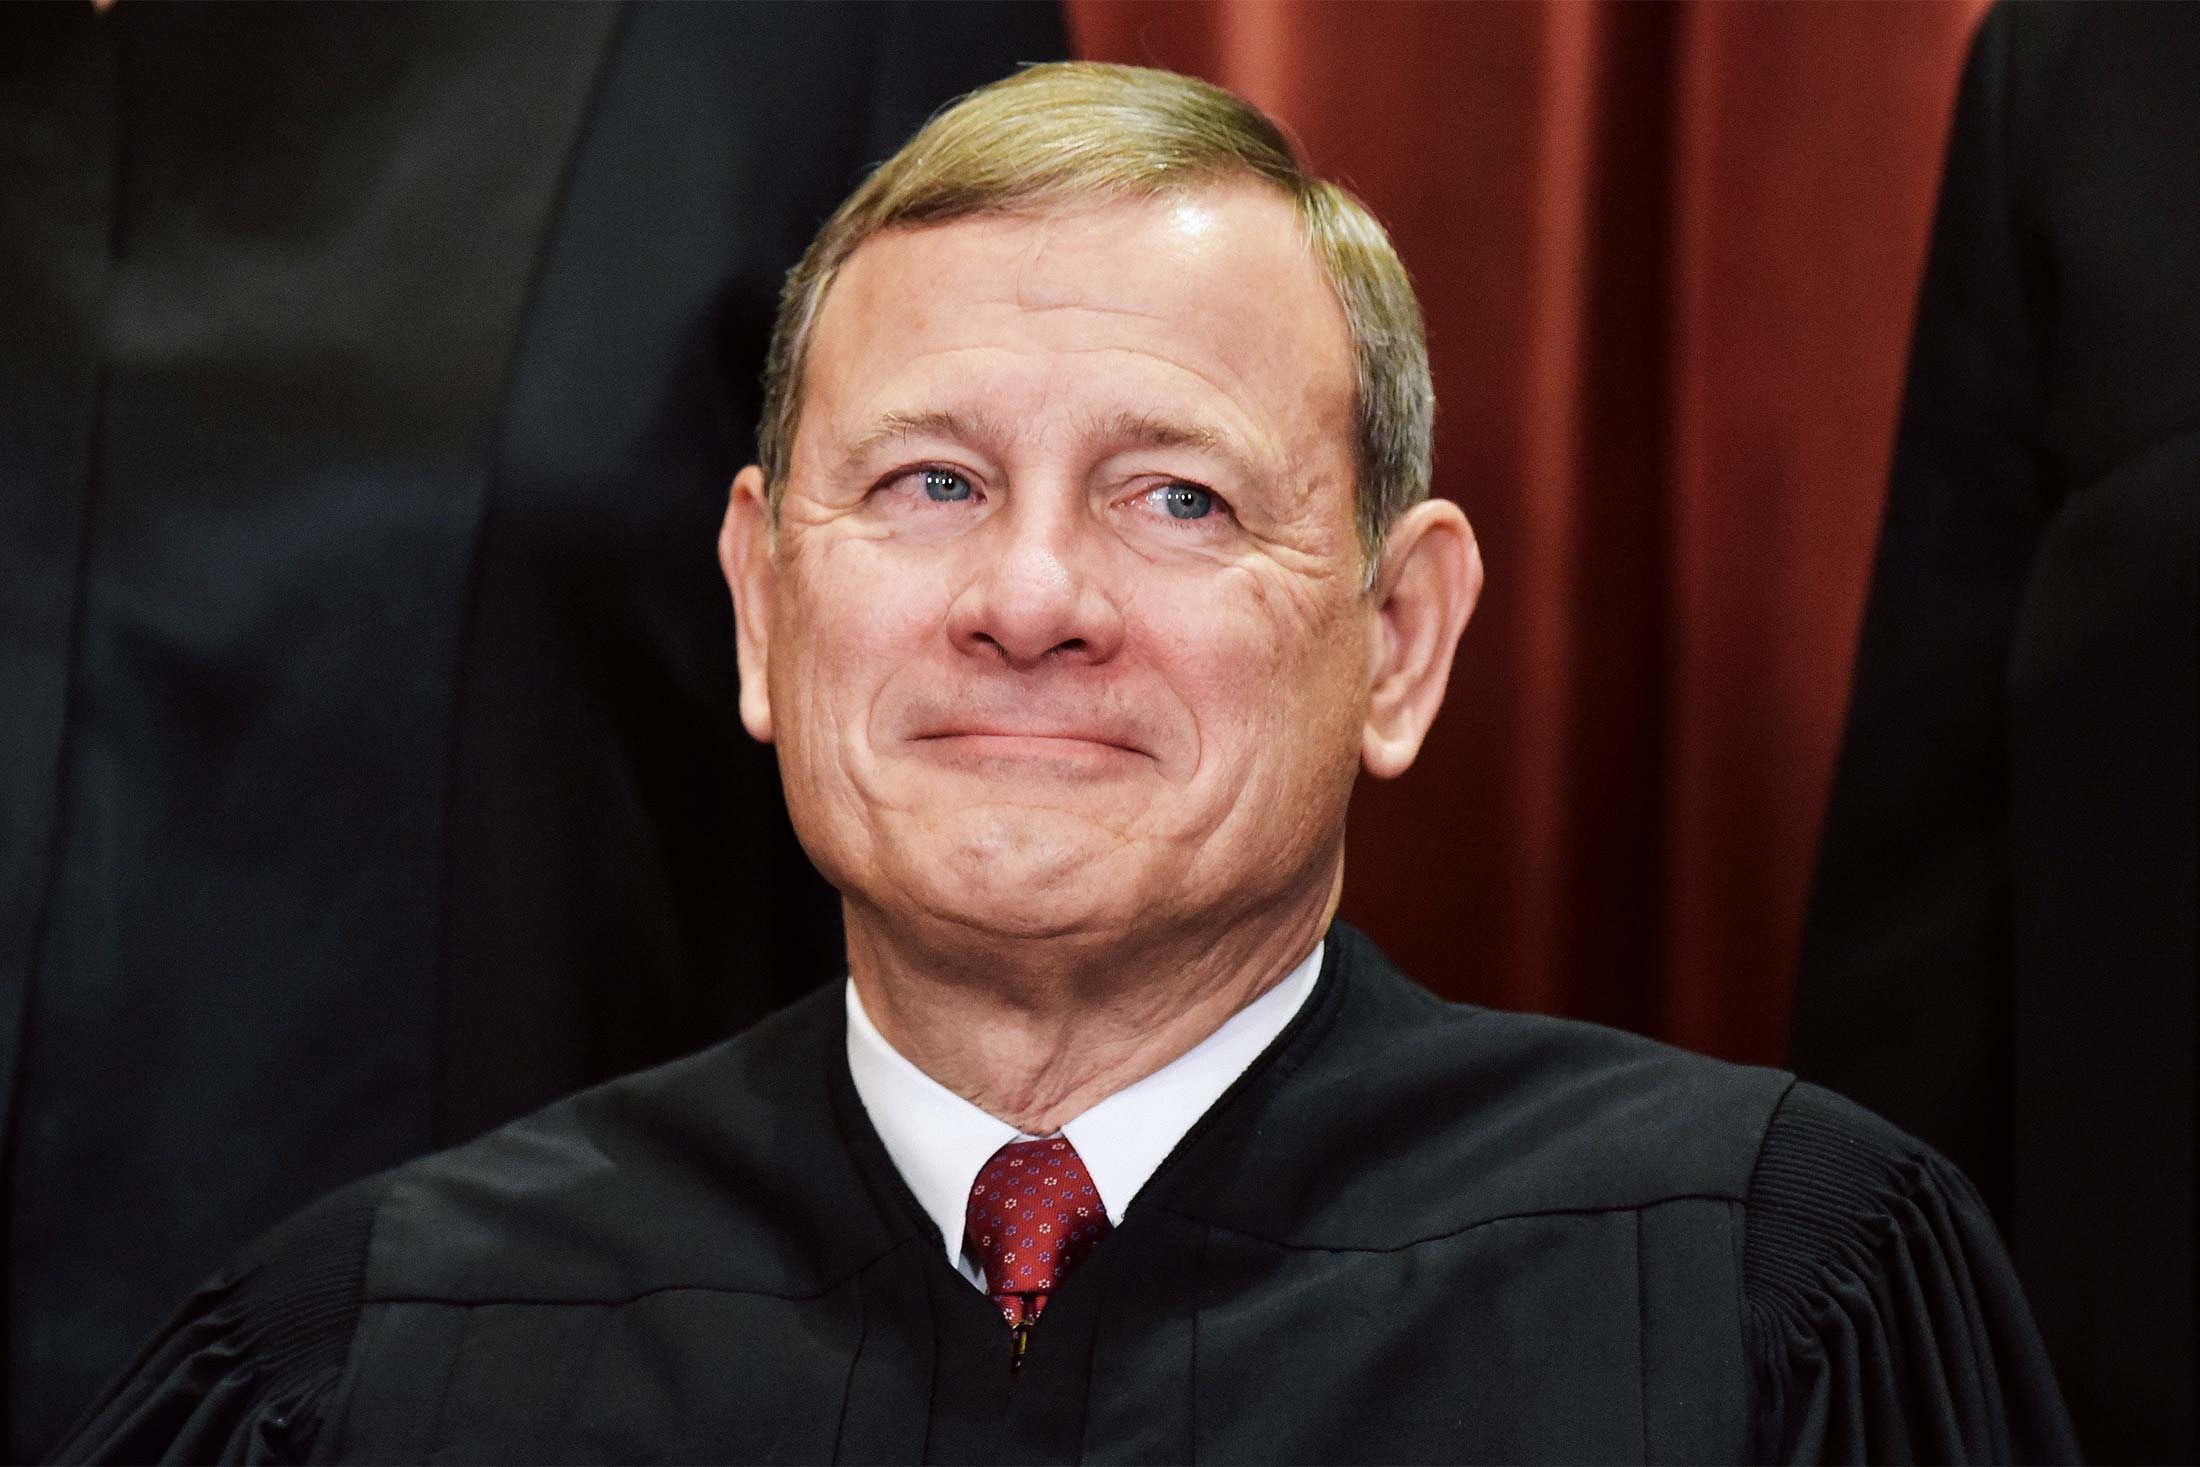 Chief Justice John Roberts poses for the official group photo at the U.S. Supreme Court in Washington on Nov. 30